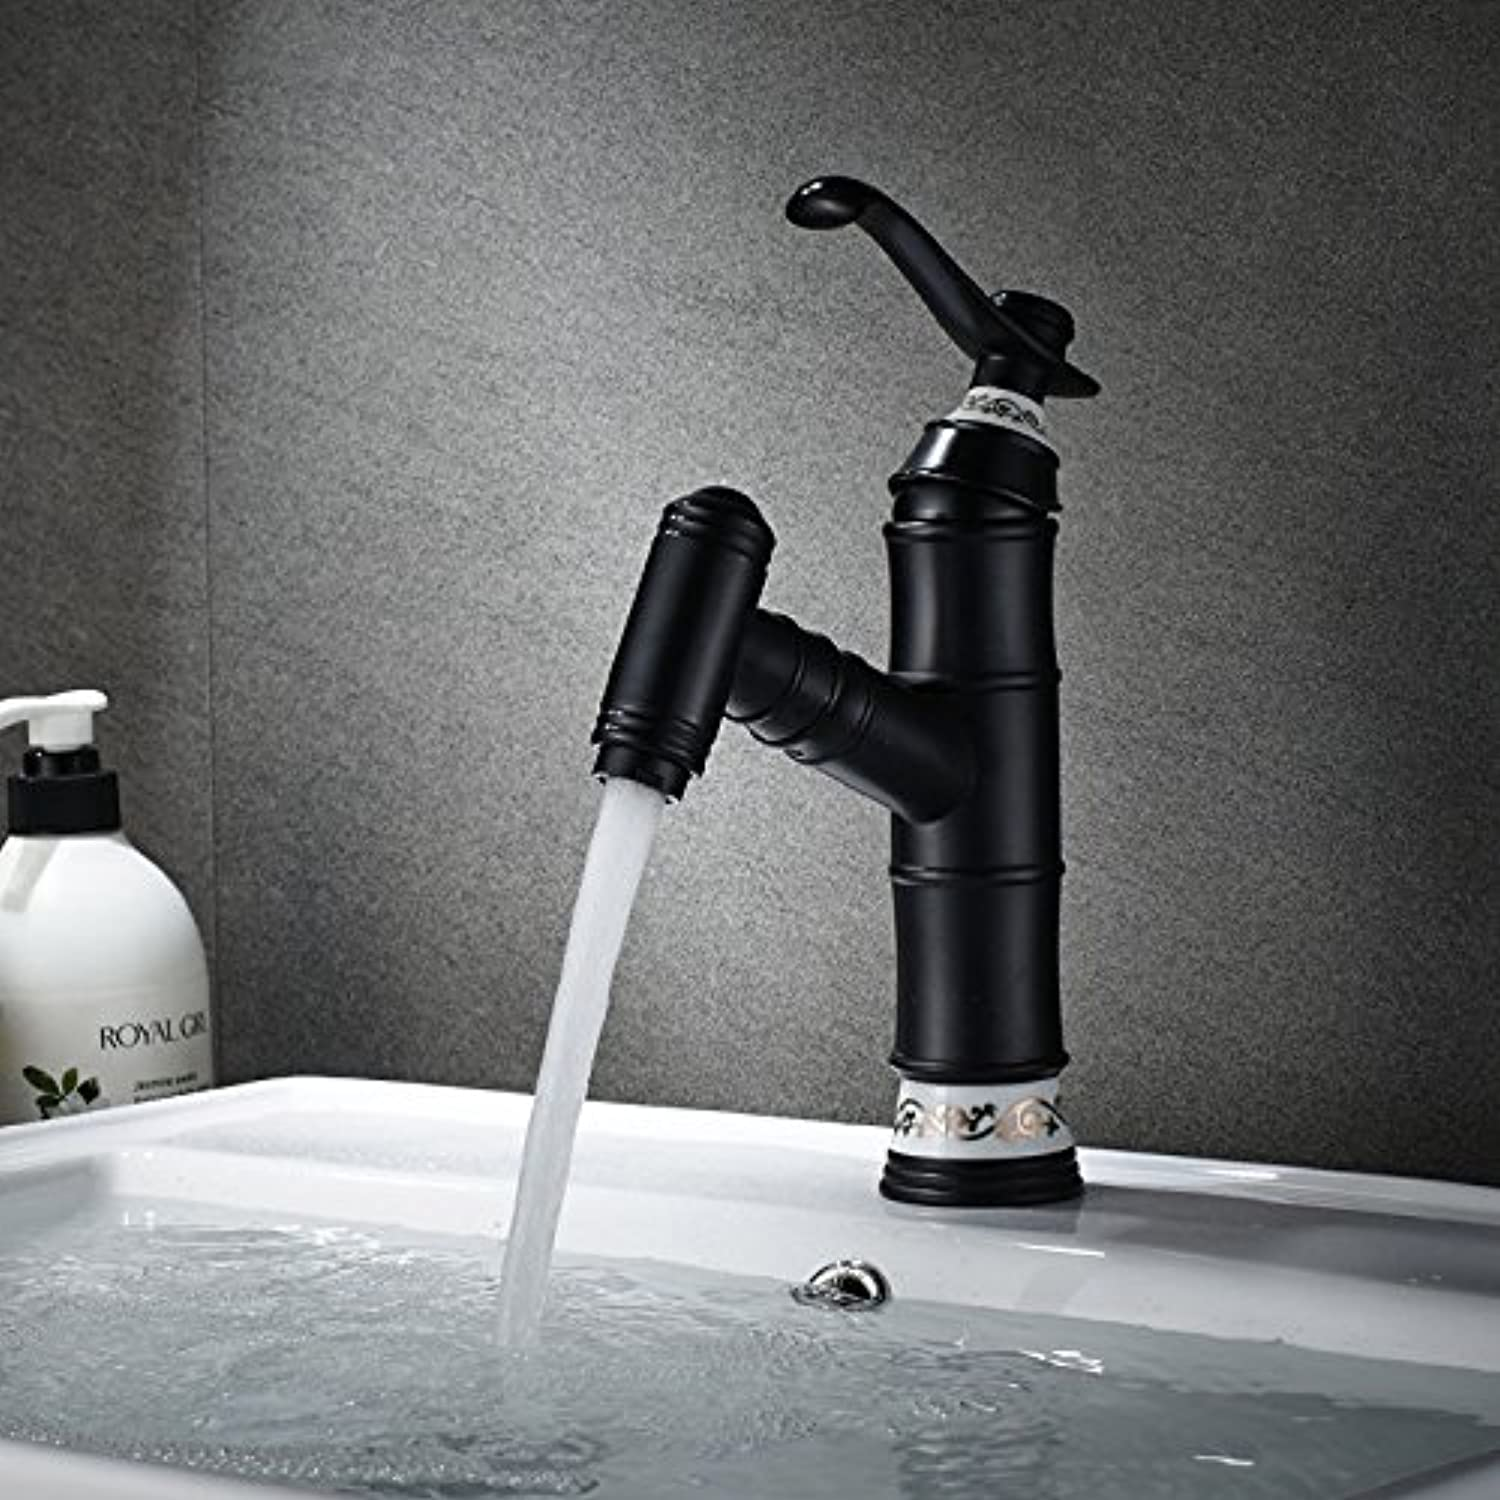 Lalaky Taps Faucet Kitchen Mixer Sink Waterfall Bathroom Mixer Basin Mixer Tap for Kitchen Bathroom and Washroom Pull-Out Copper Hot and Cold Retractable Black